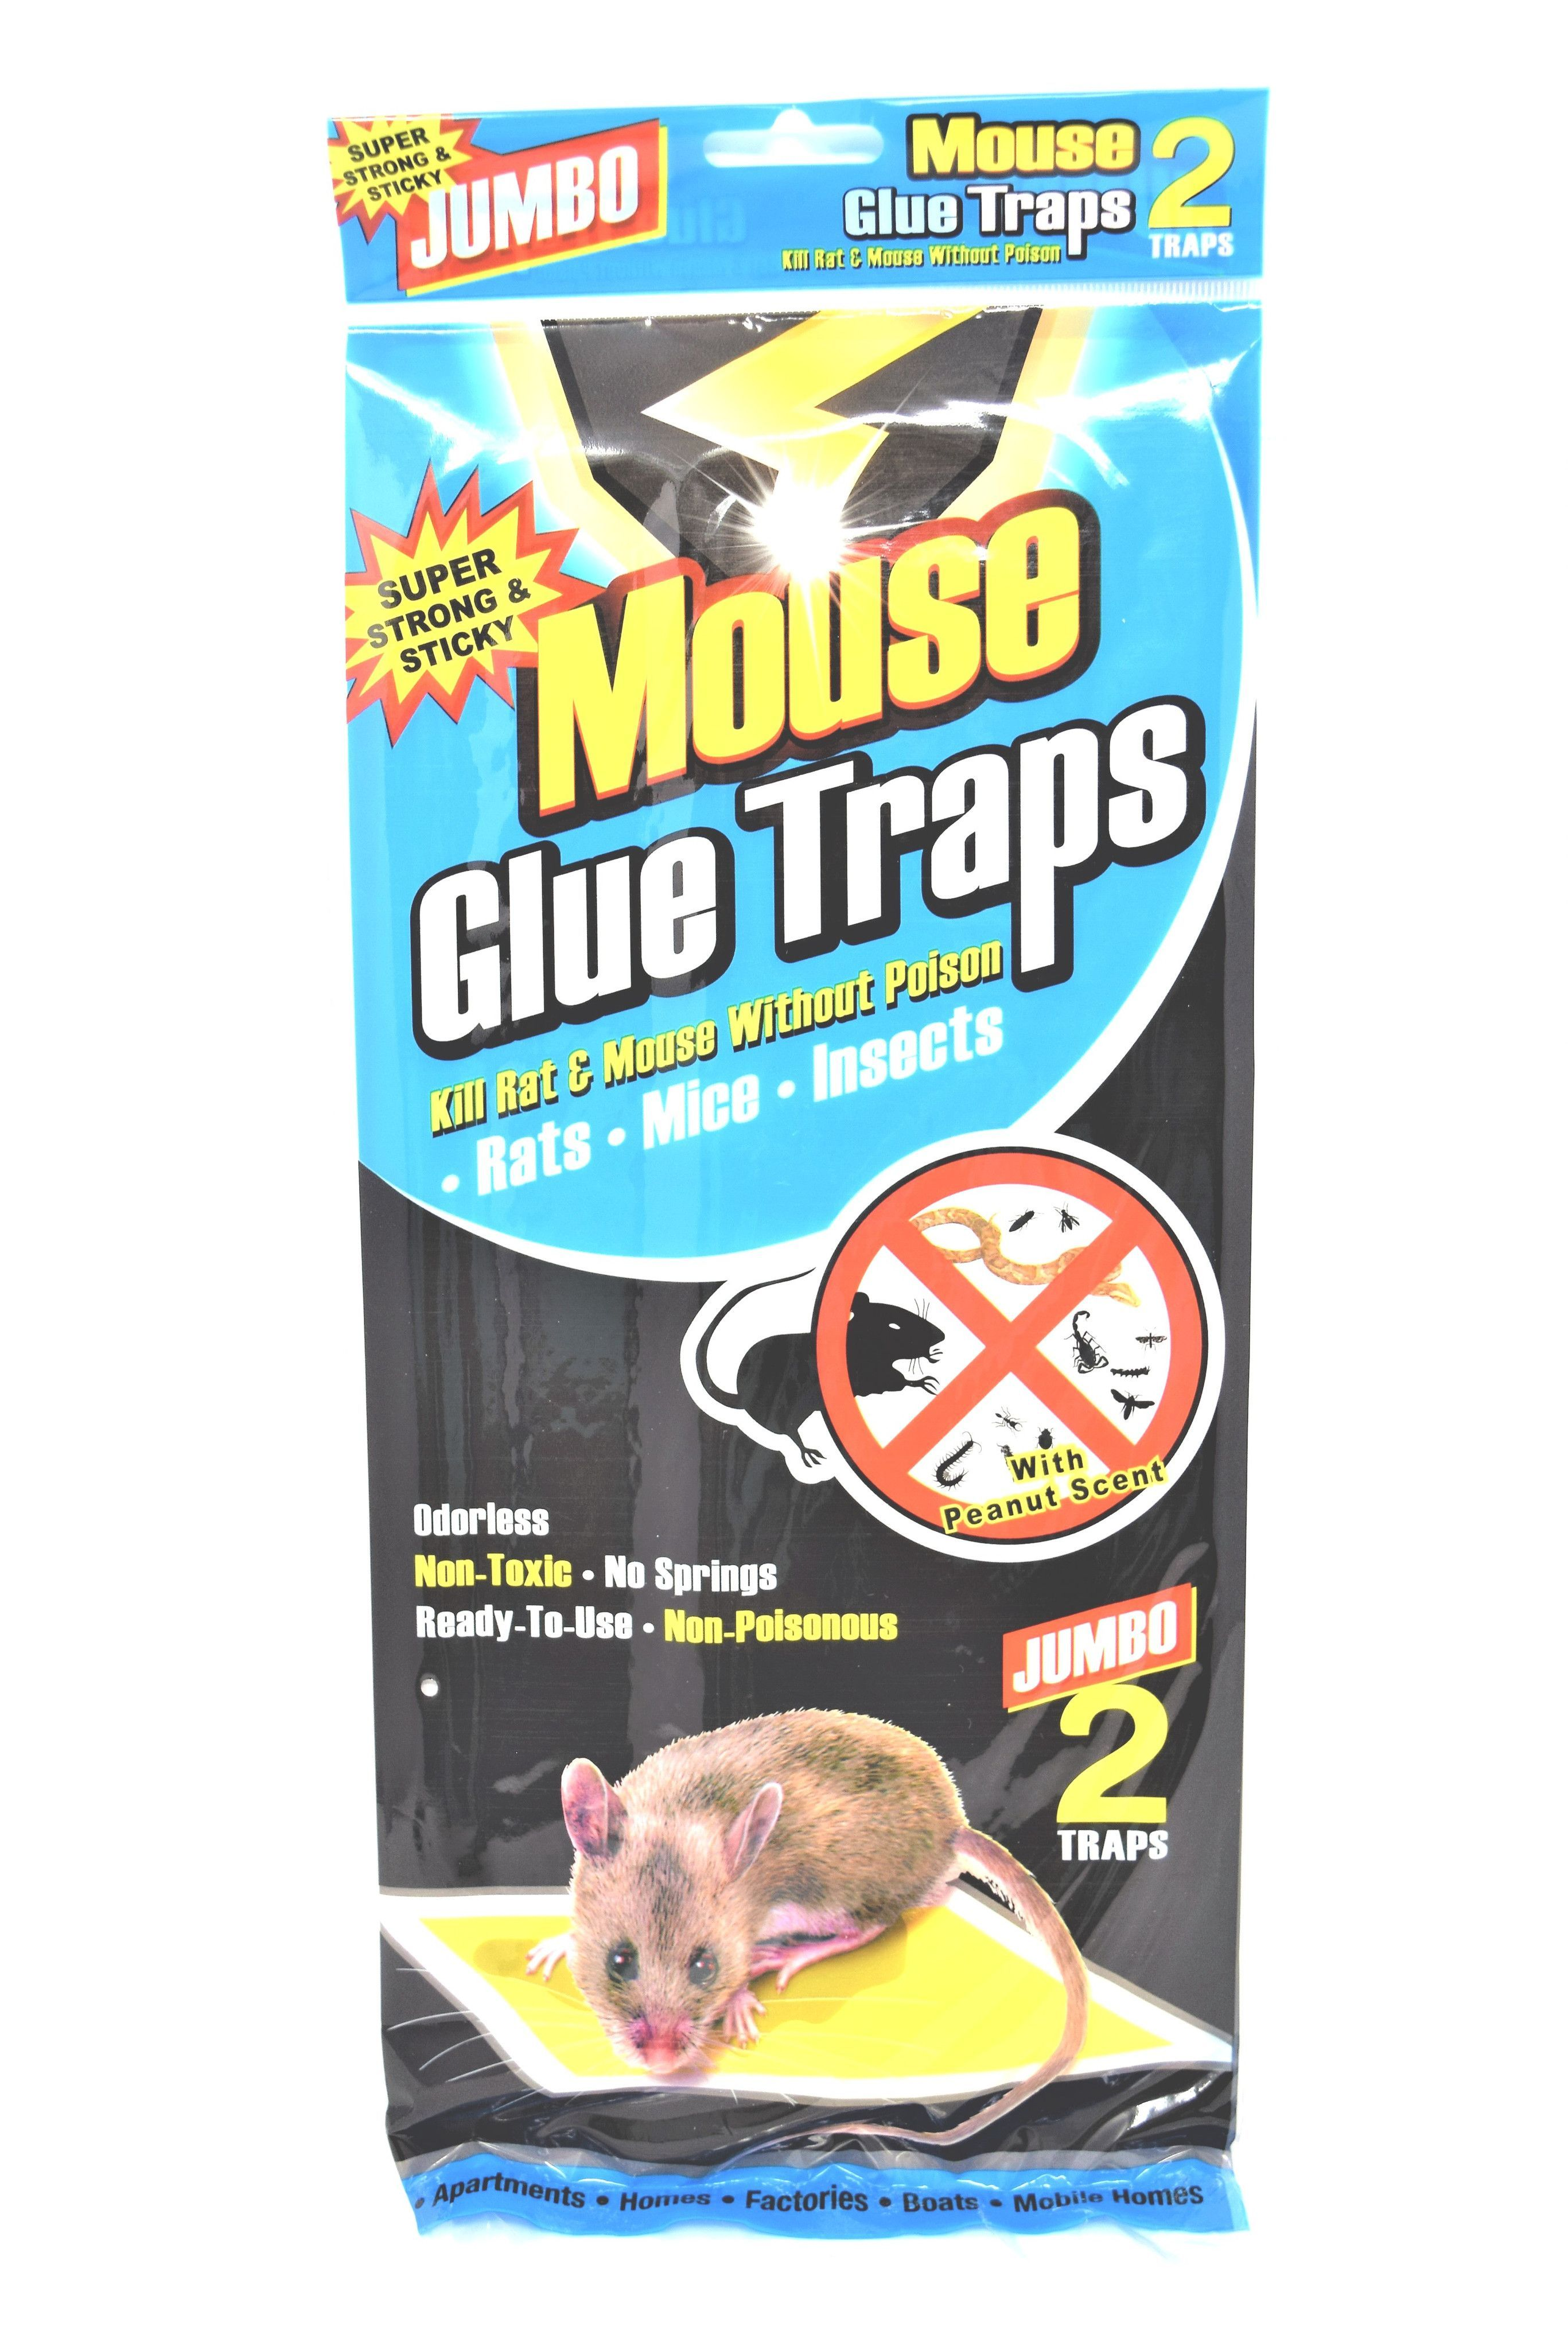 Jumbo Size Mouse Glue Traps, 2 Pack   Products   Pinterest   Mouse ...